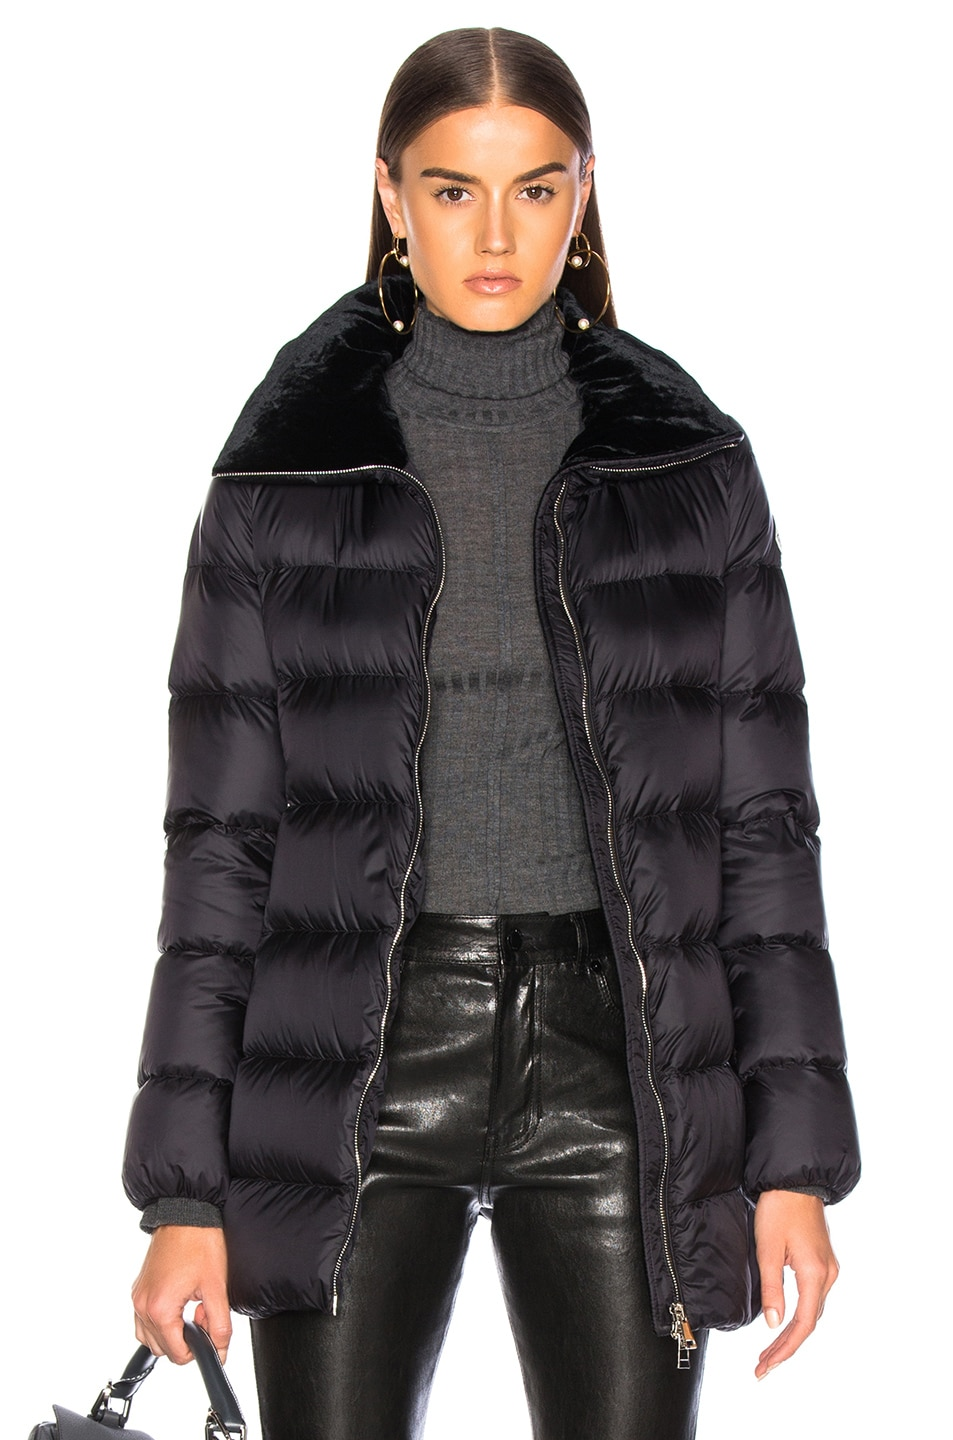 Image 1 of Moncler Torcol Giubbotto Jacket in Black